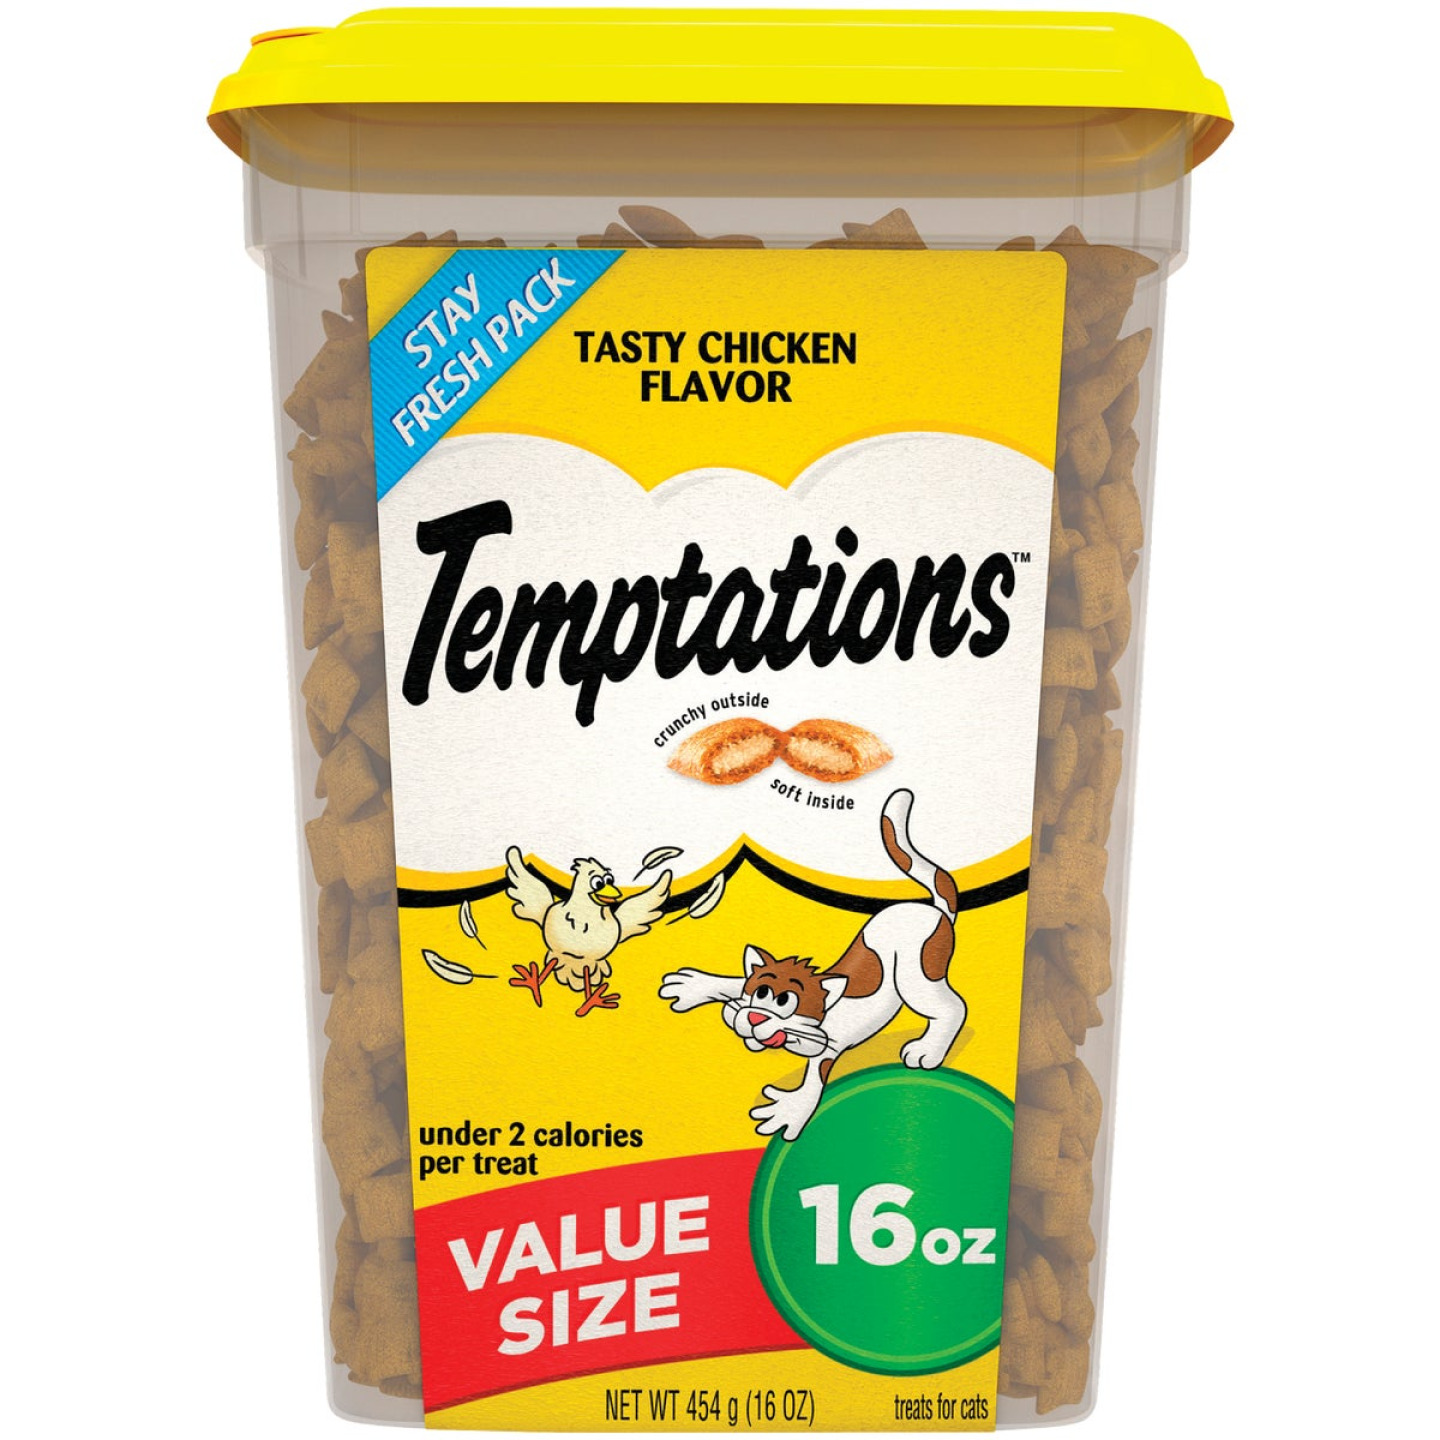 Temptations Tasty Chicken 16 Oz. Cat Treats Image 1